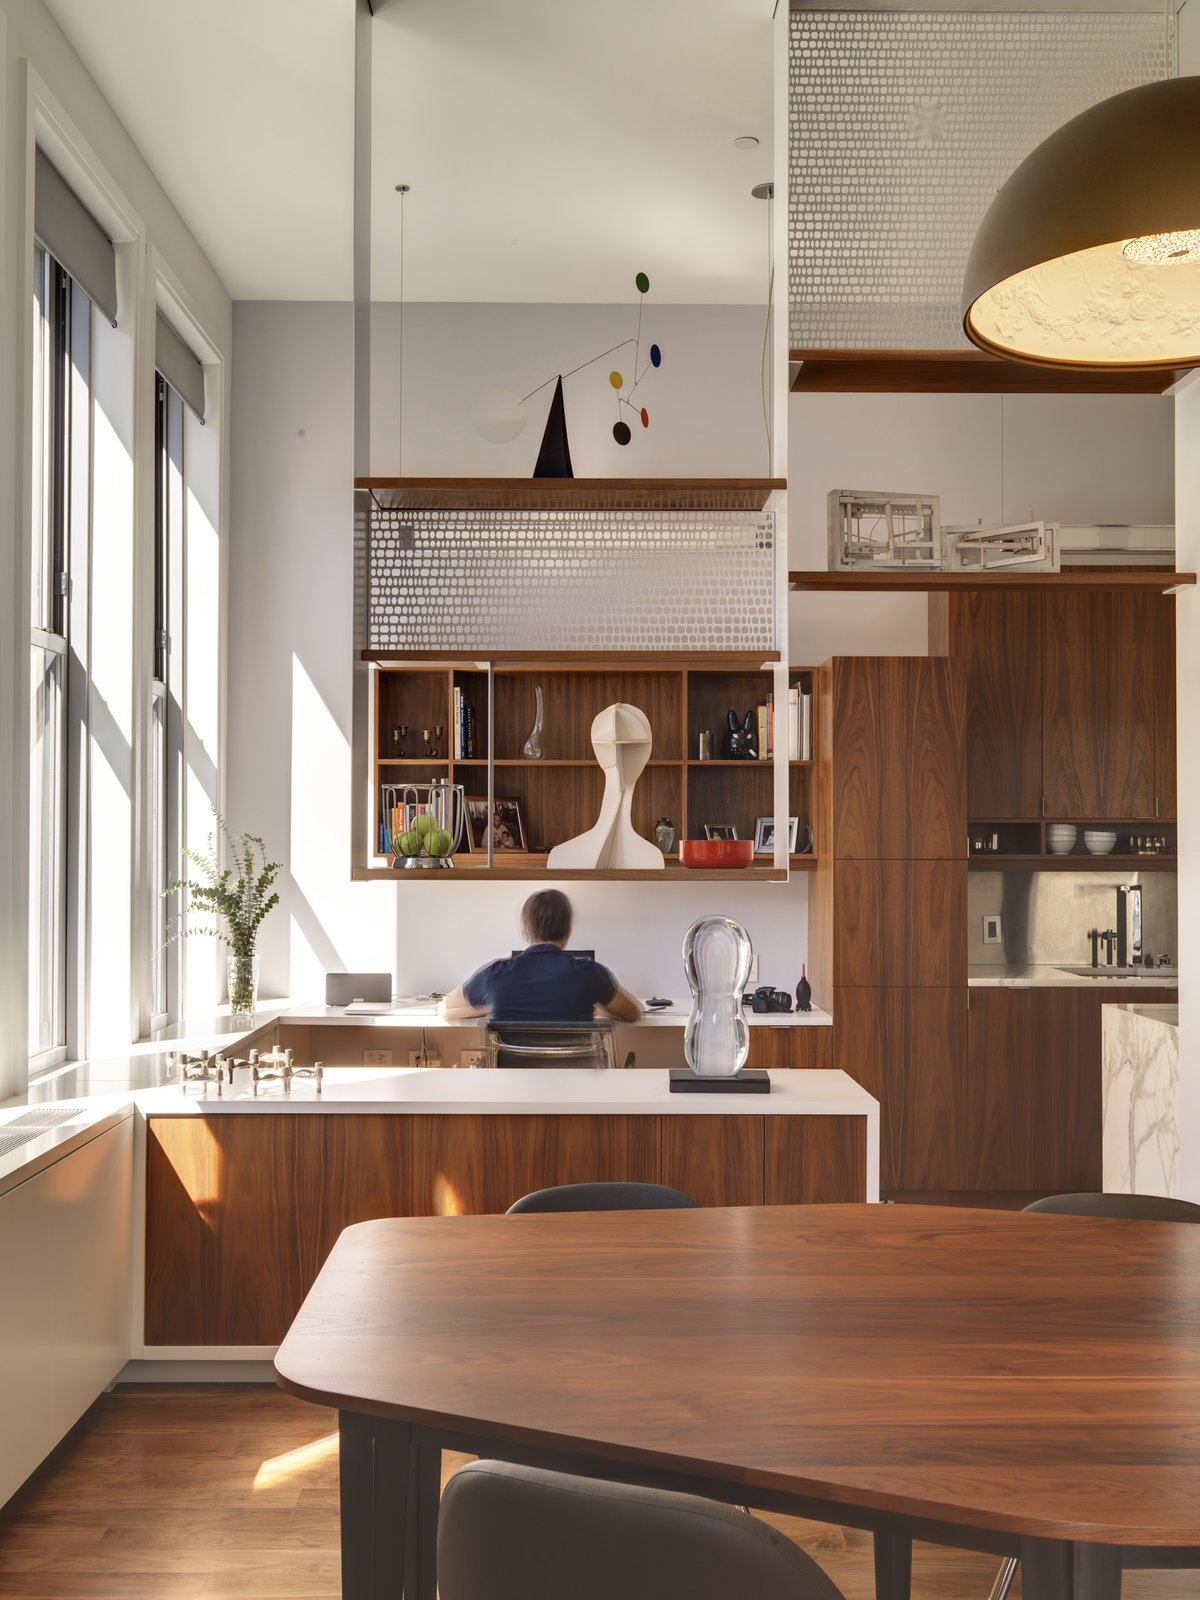 """The open shelving reaches to the apartment's 13-foot ceilings, bringing the eye's attention upwards. Built-in furniture, like the desk Bart works at, was designed throughout the apartment. The couple imagine the desk will be taken over by their children once they're old enough to do homework. """"The design of the space allows us to spend time together, even when we're doing different things,"""" Bart says, of the open floor plan.  Photo 5 of 7 in Luminous Apartment in a Historic NYC Building"""